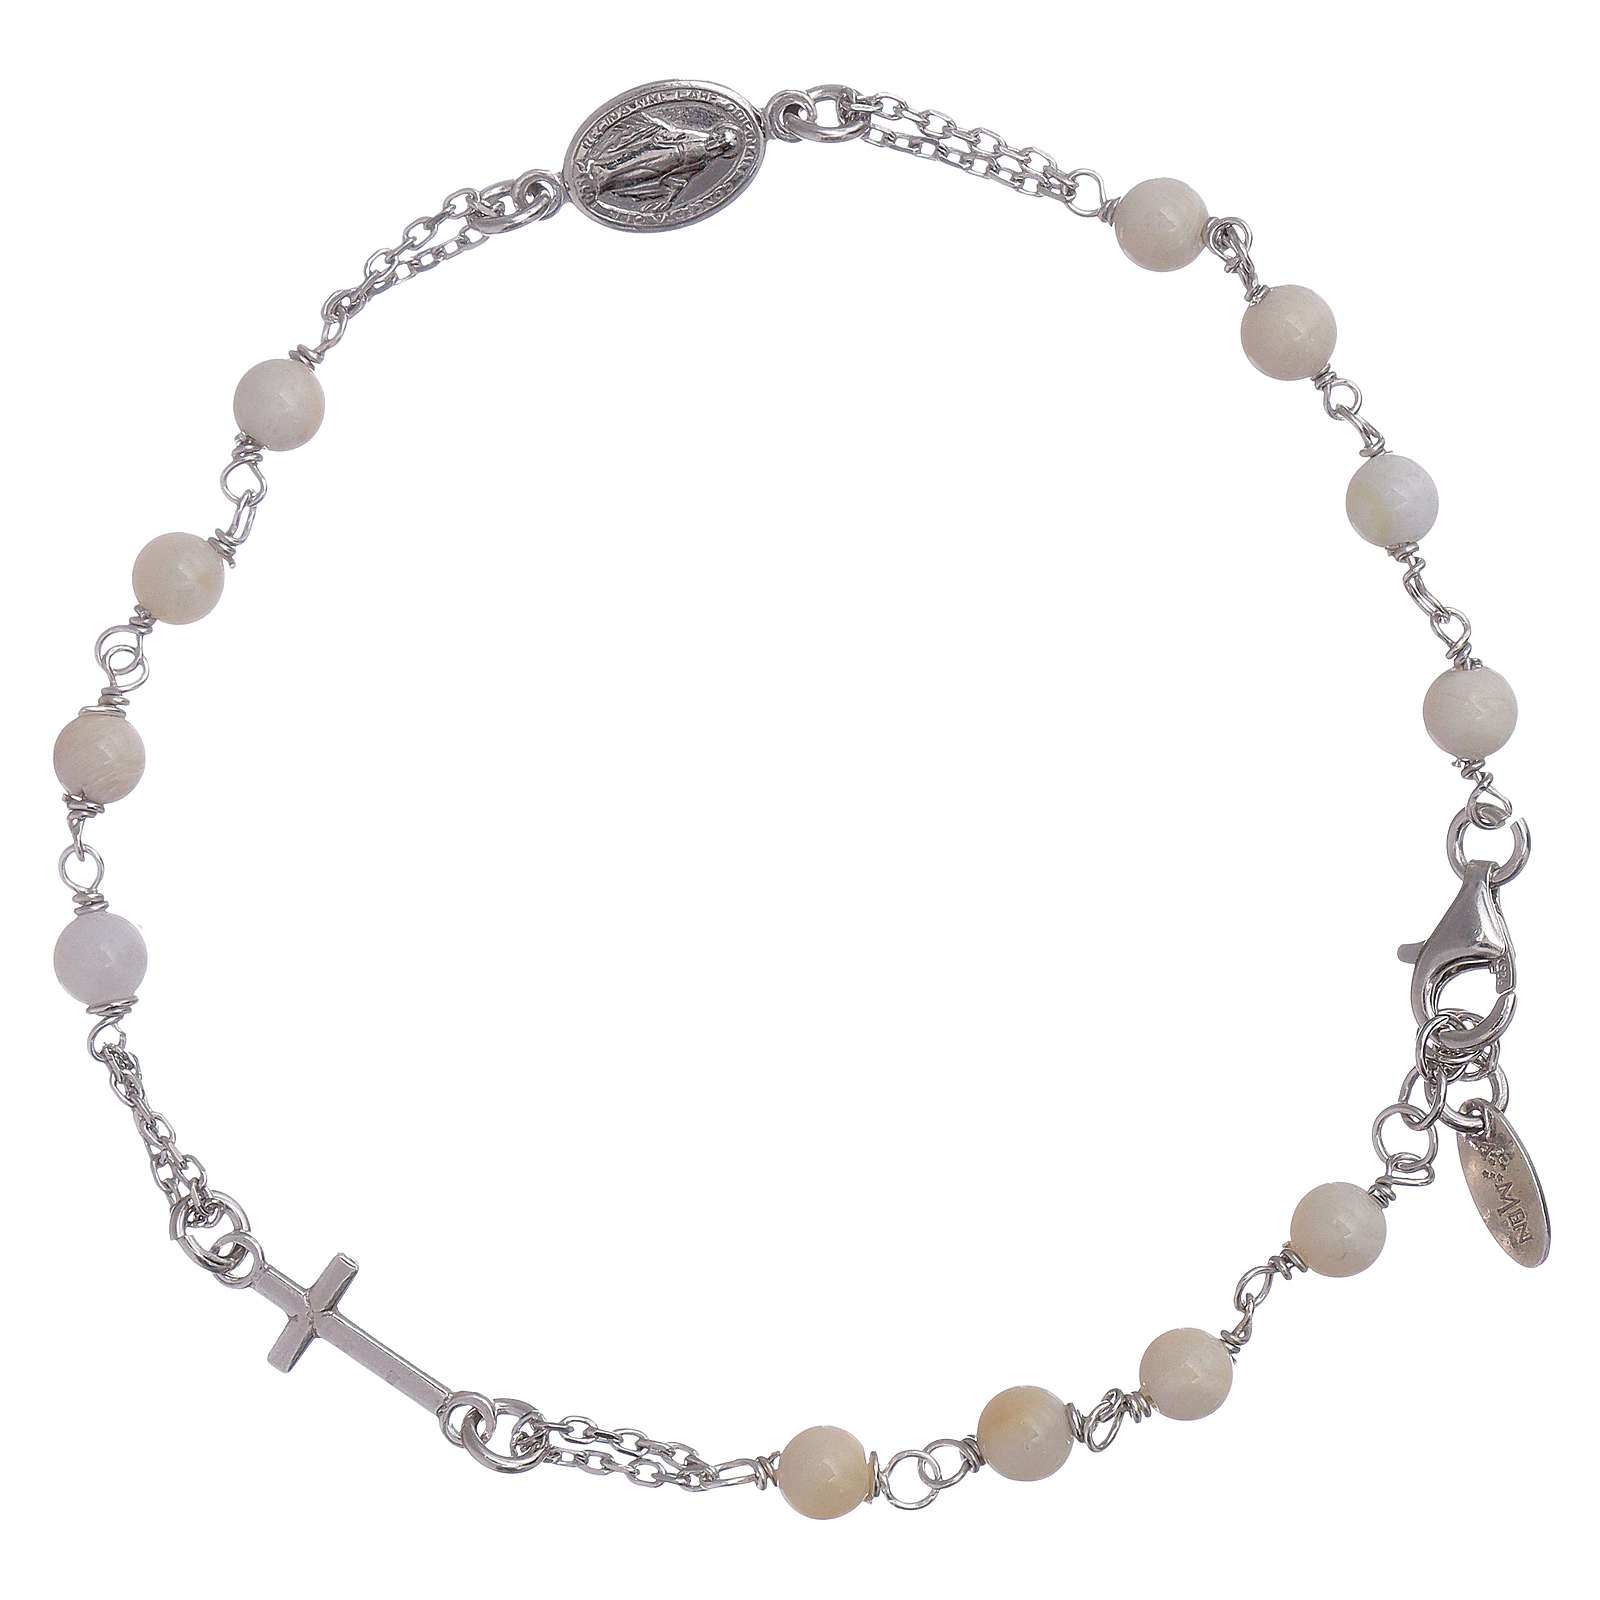 AMEN 925 sterling silver rosary bracelet with mother of pearl beads 4